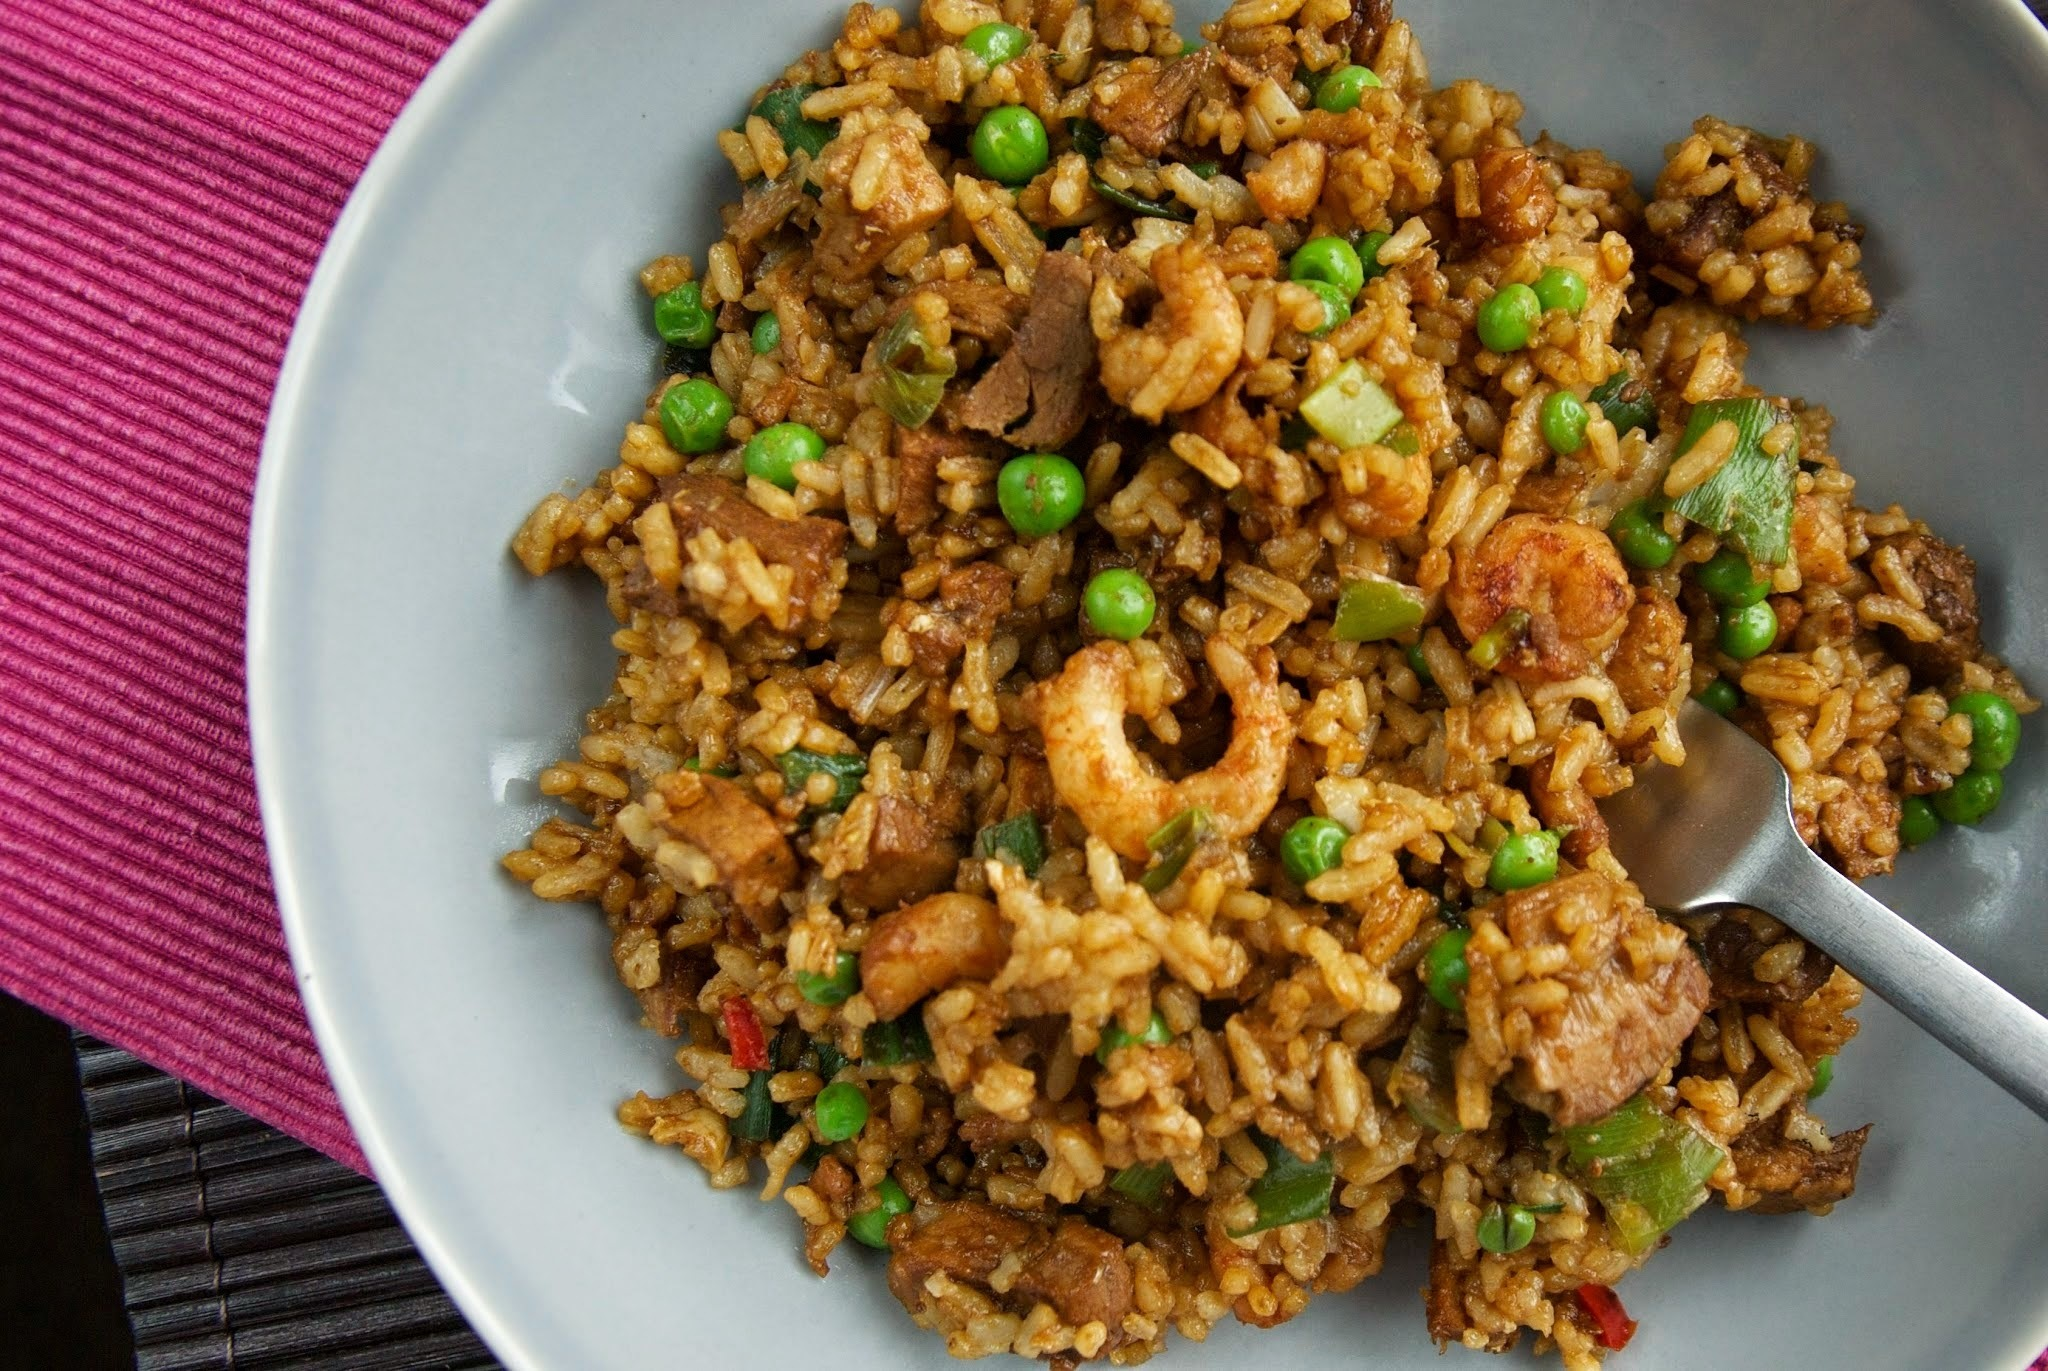 Fried rice with leftover pork and prawns